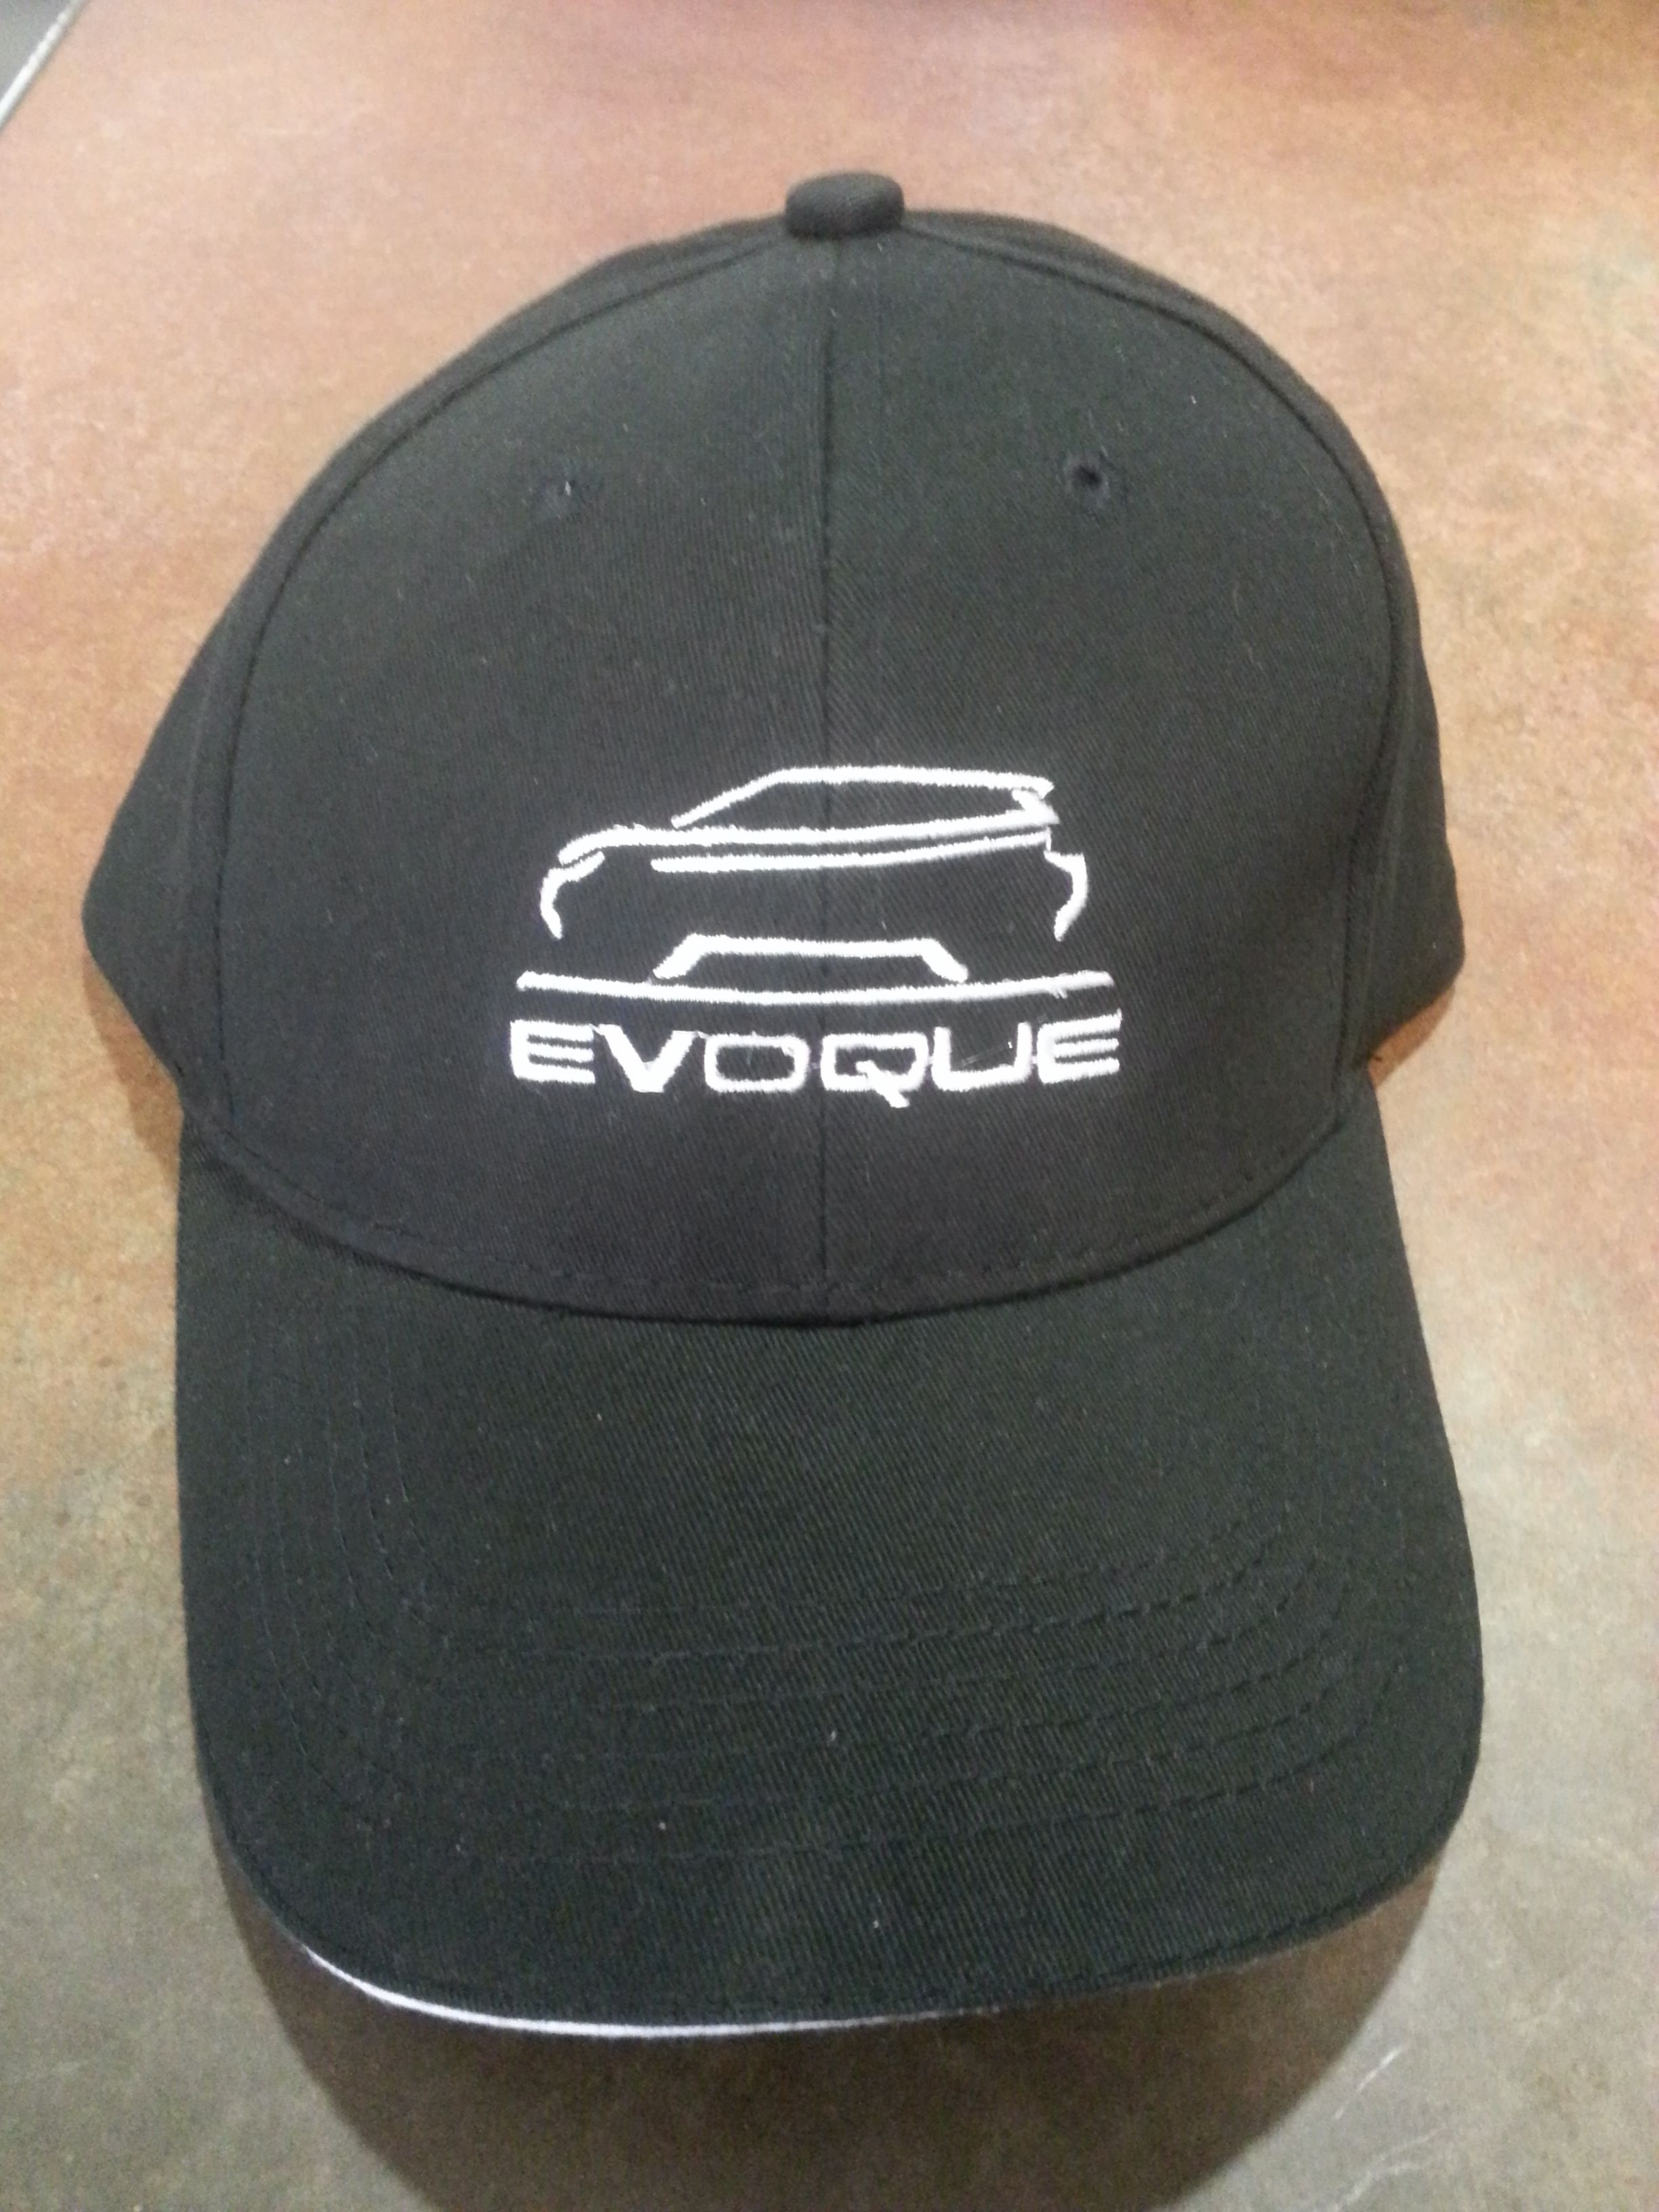 0ff48ebd461c7 Range Rover Evoque Black with white Baseball Cap  pure-evoque-baseball-cap   -  22.00   Range Rover Evoque Accessorie from Pure Evoque